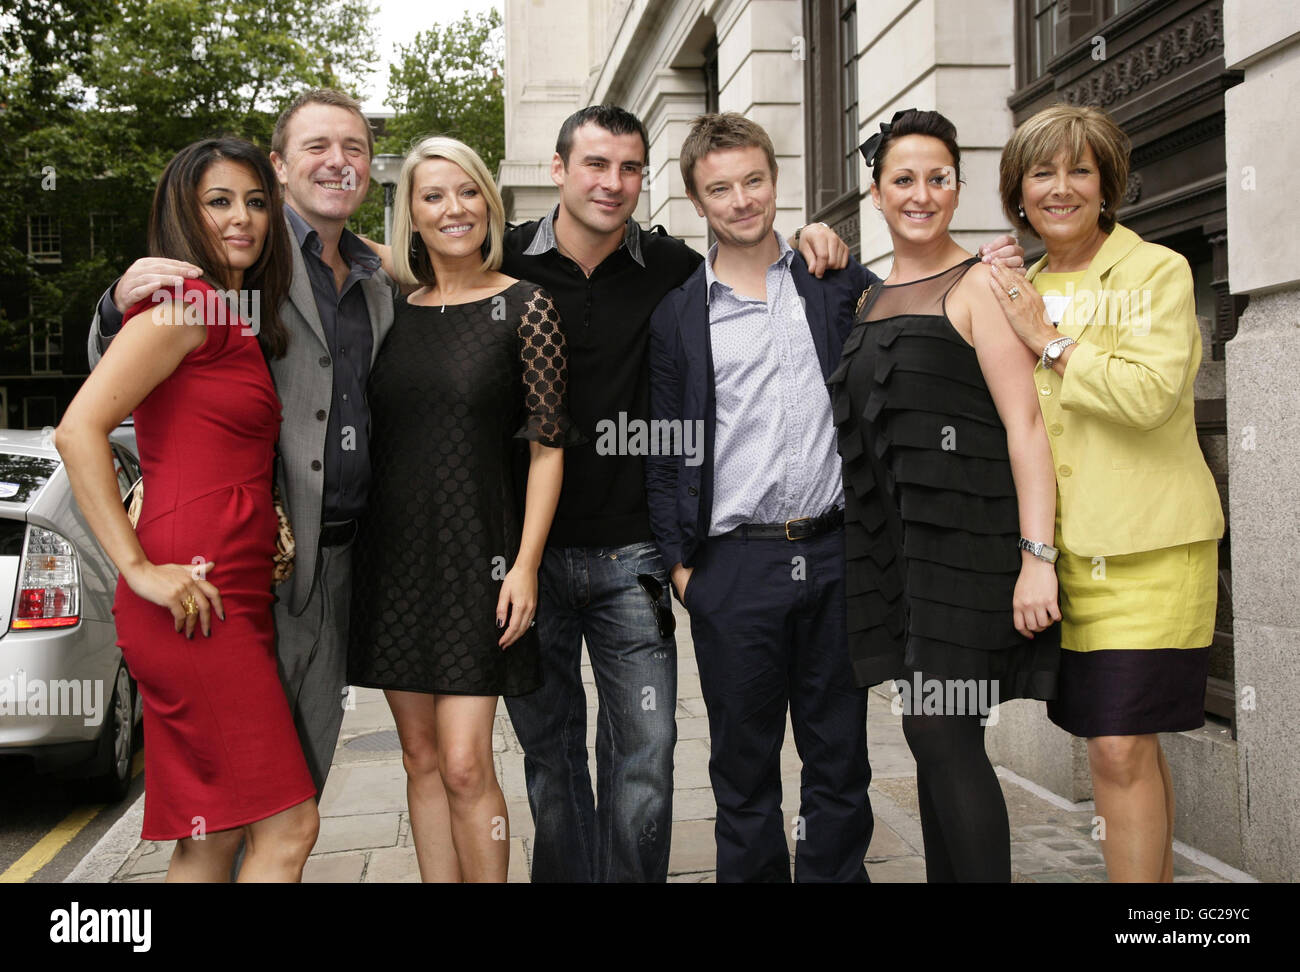 Strictly Come Dancing contestants revealed - Stock Image